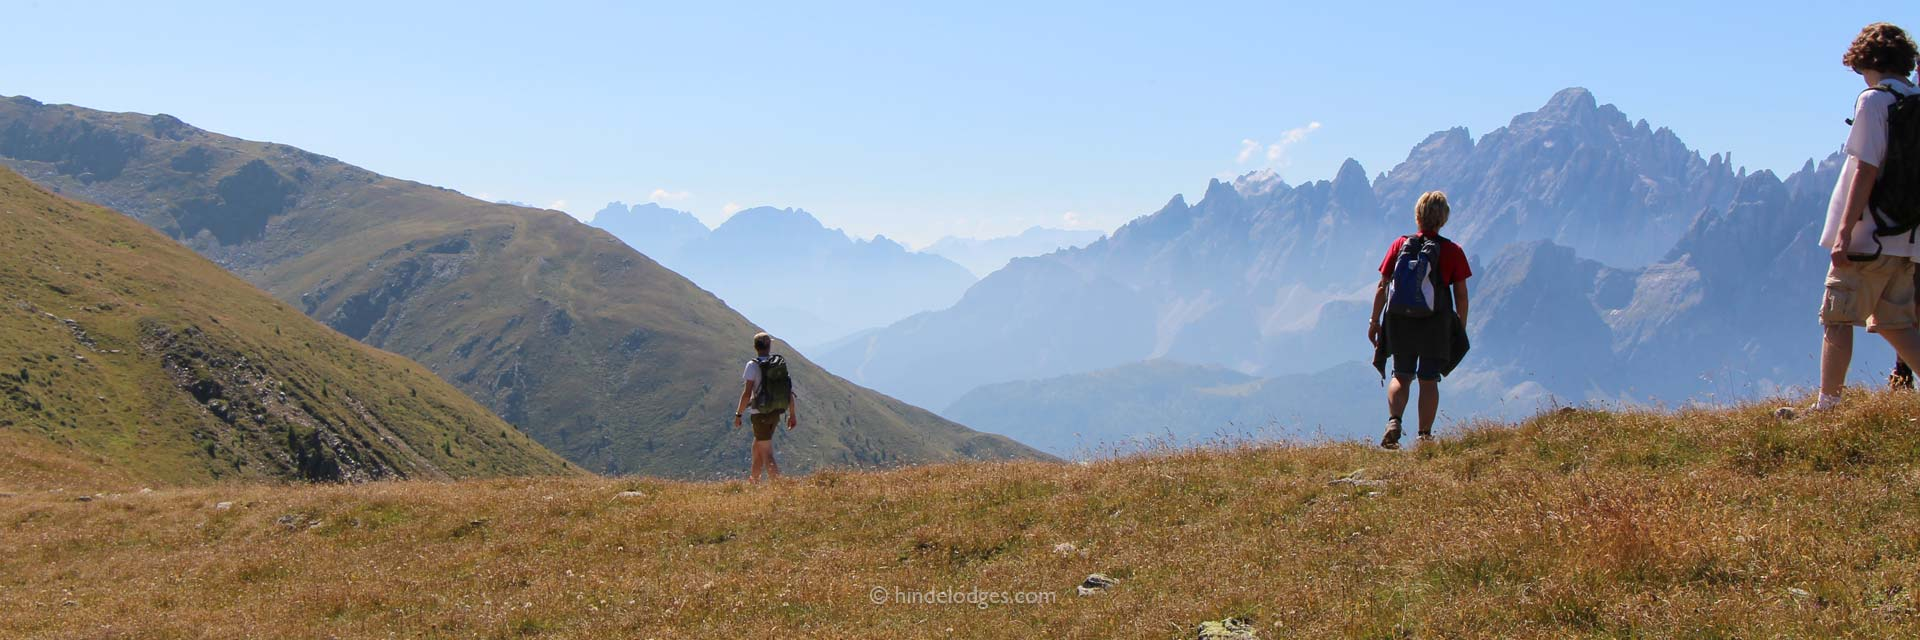 Mountain Ridge Trail walk - Hinde Lodges